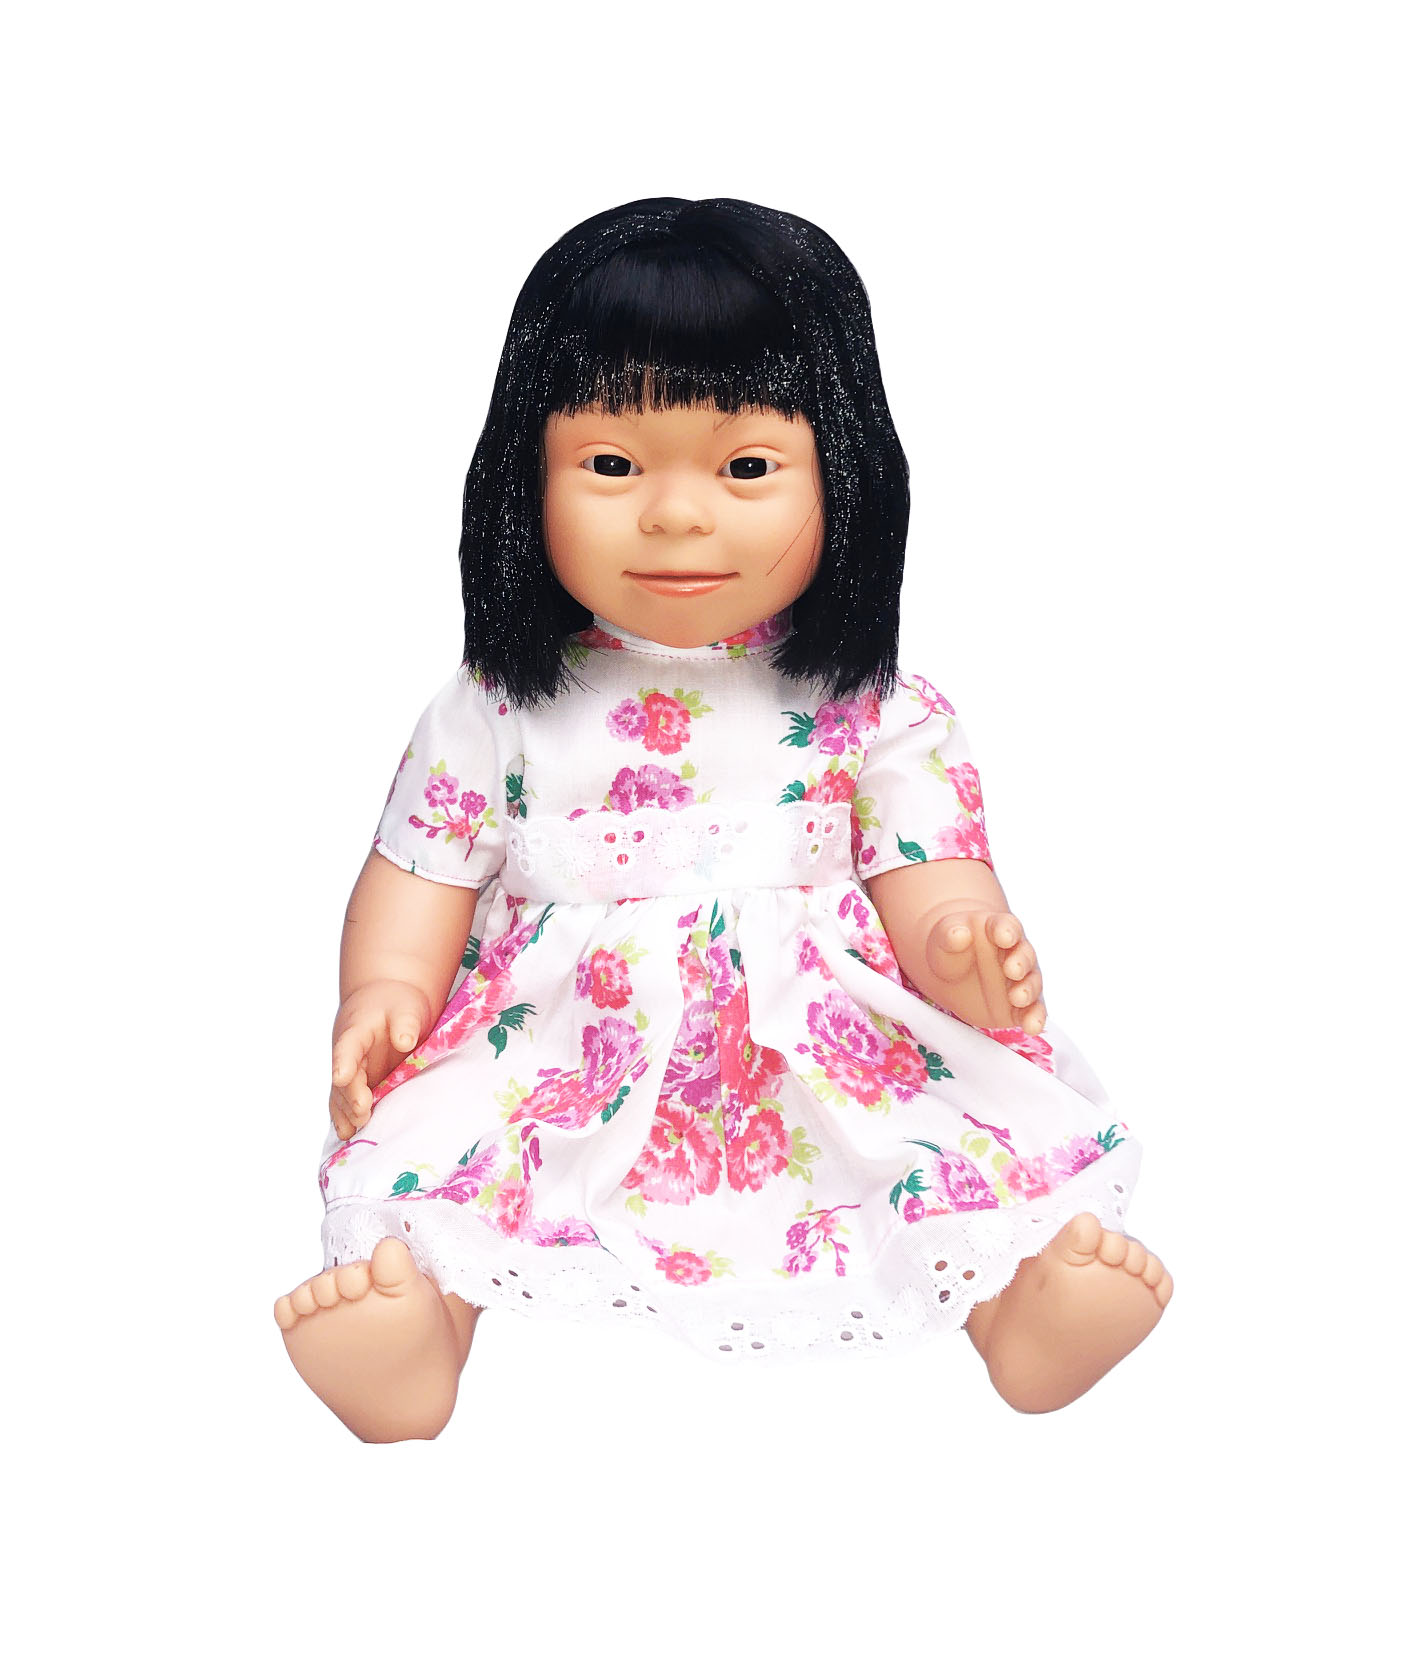 Asian Girl - Down Syndrome Doll